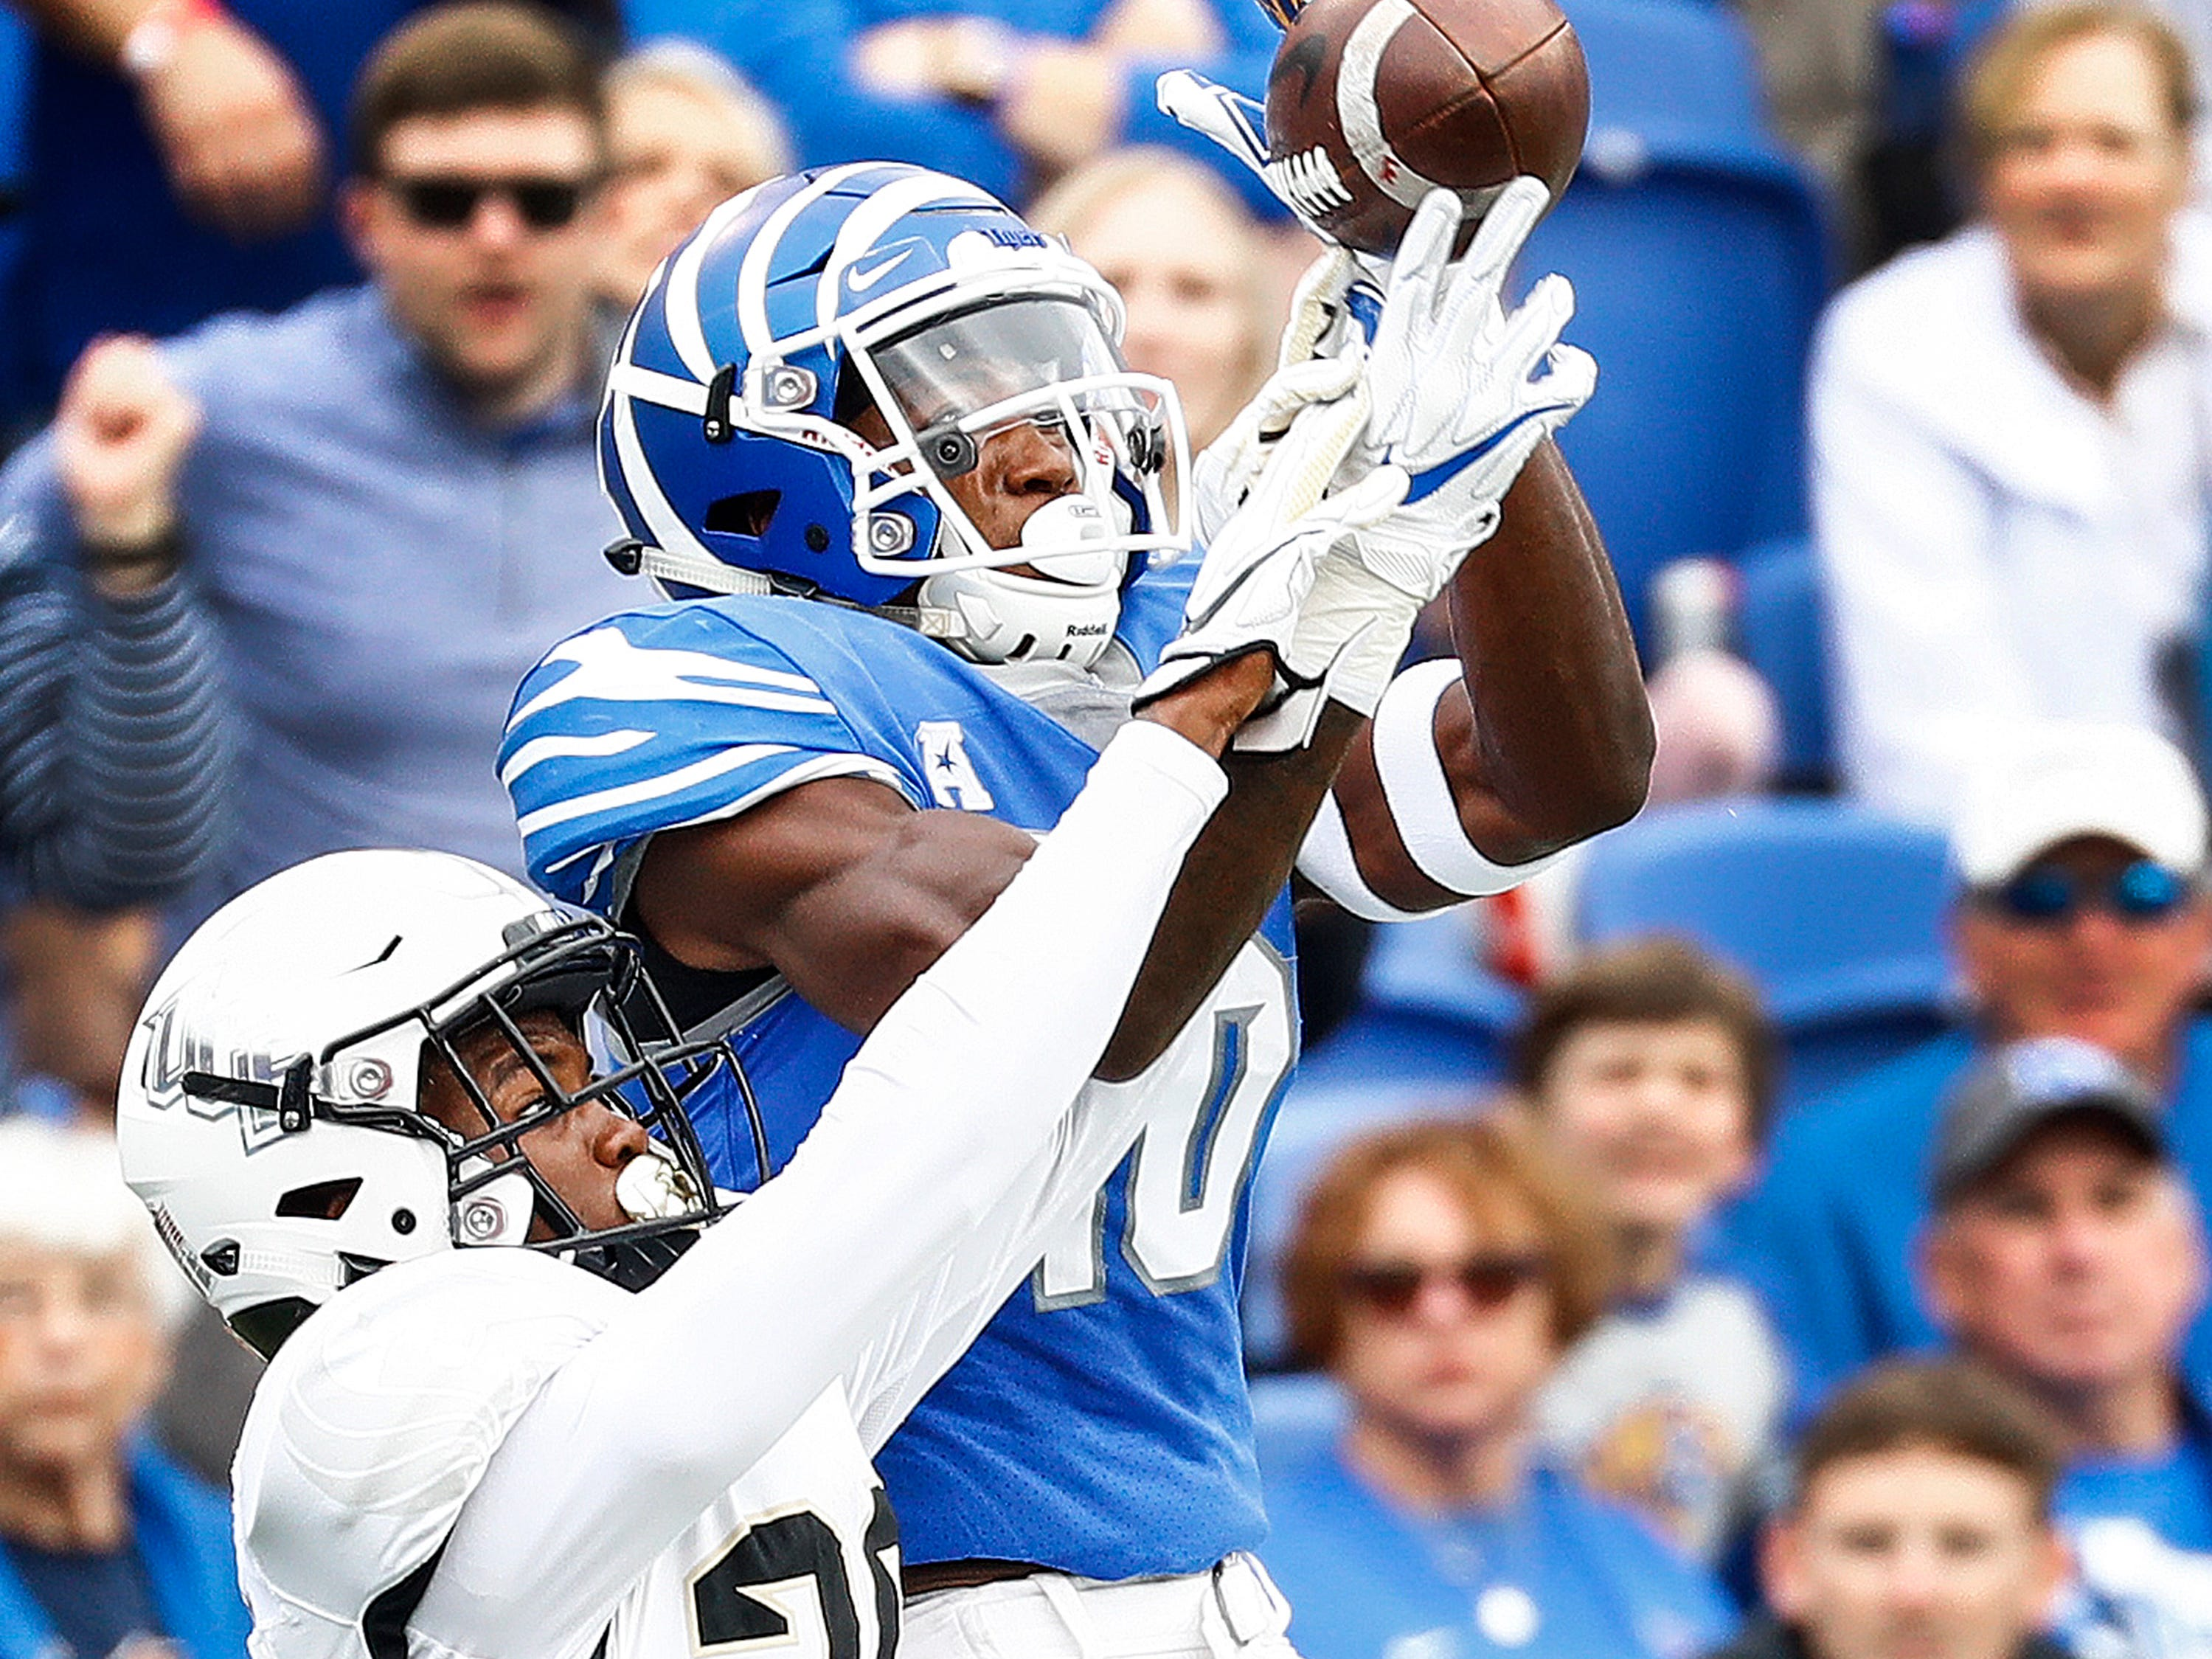 Memphis receiver Damonte Coxie (right) can not hang onto a catch against Central Florida defender Brandon Moore (left) during action in Memphis, Tenn., Saturday, October 13, 2018.